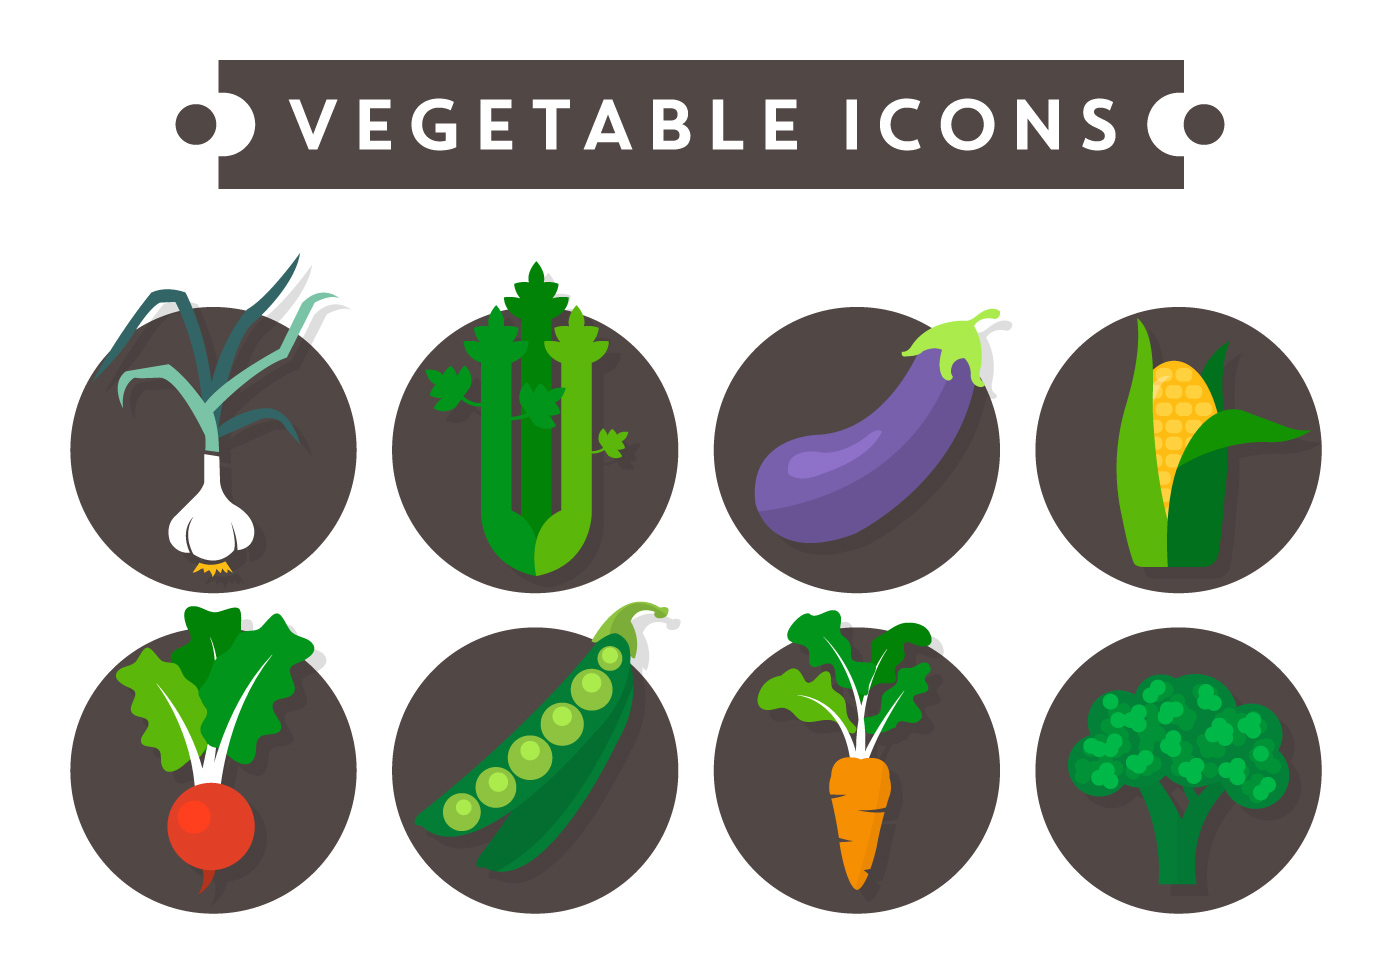 Vegetable Vector Icons - Download Free Vectors, Clipart ...